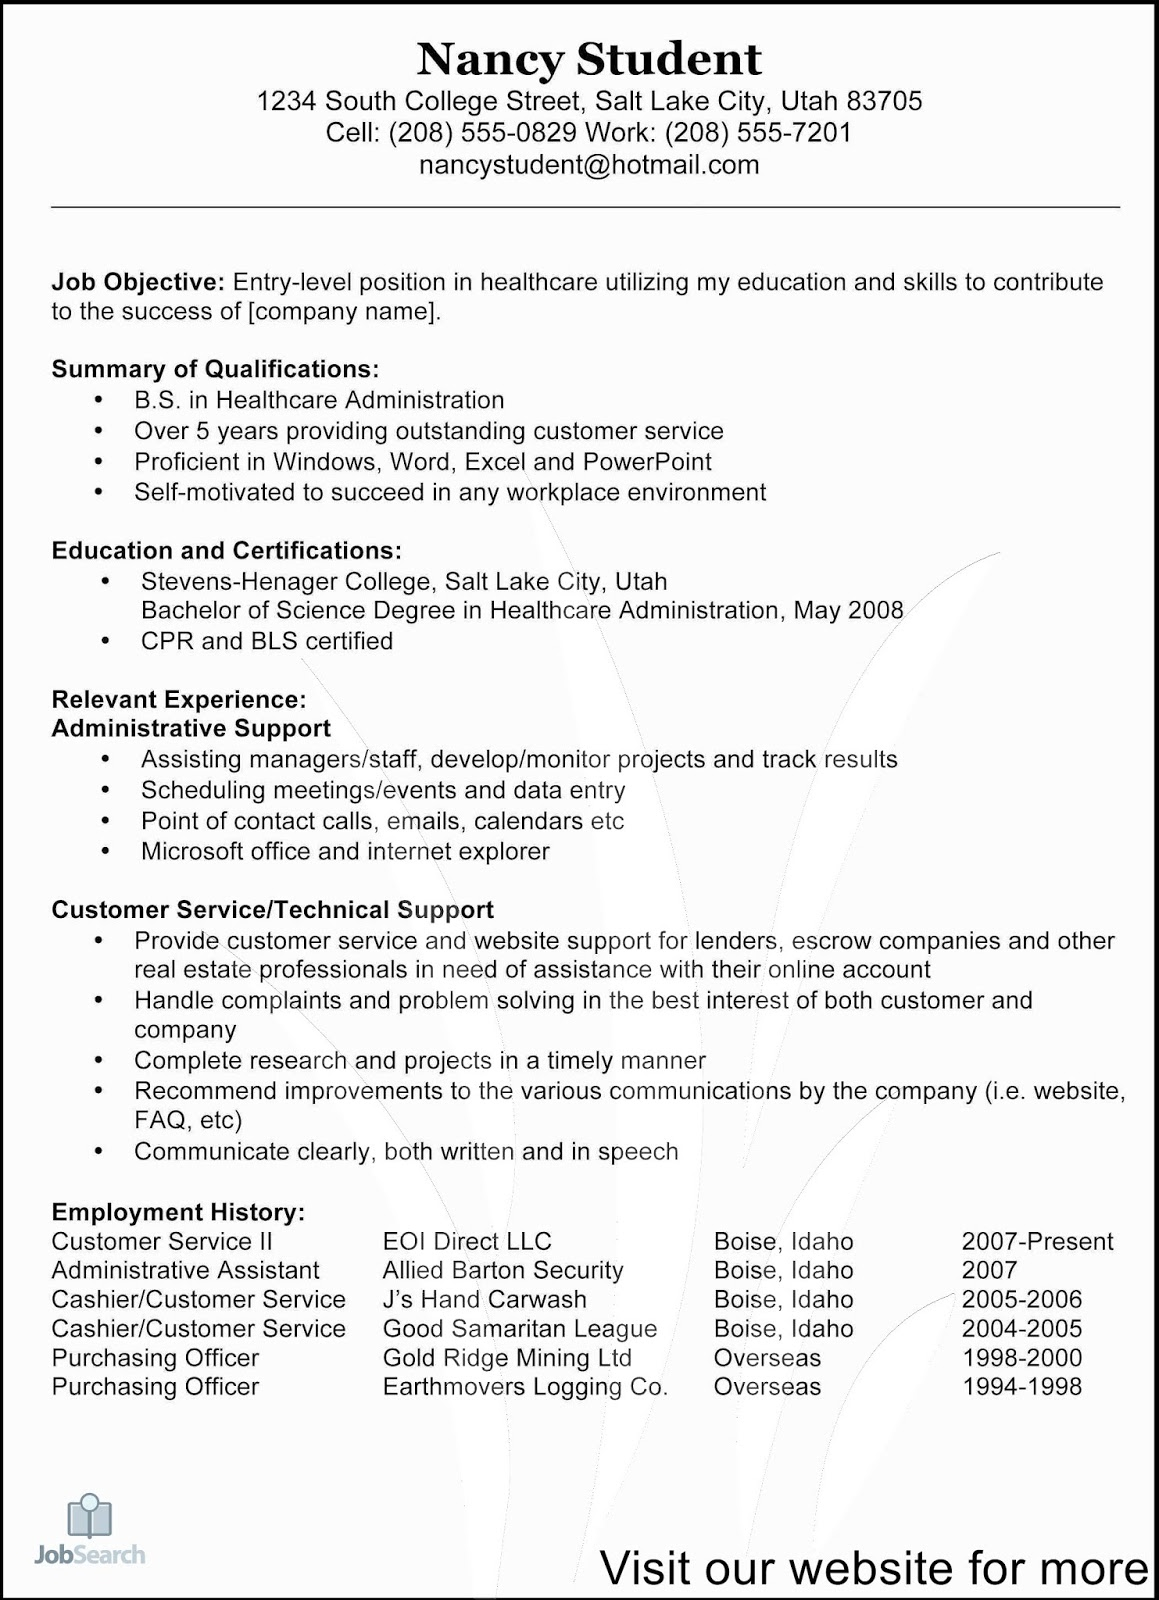 customer service resume objective or summary examples contoh pekerjaan example cover Resume Customer Service Resume Objective